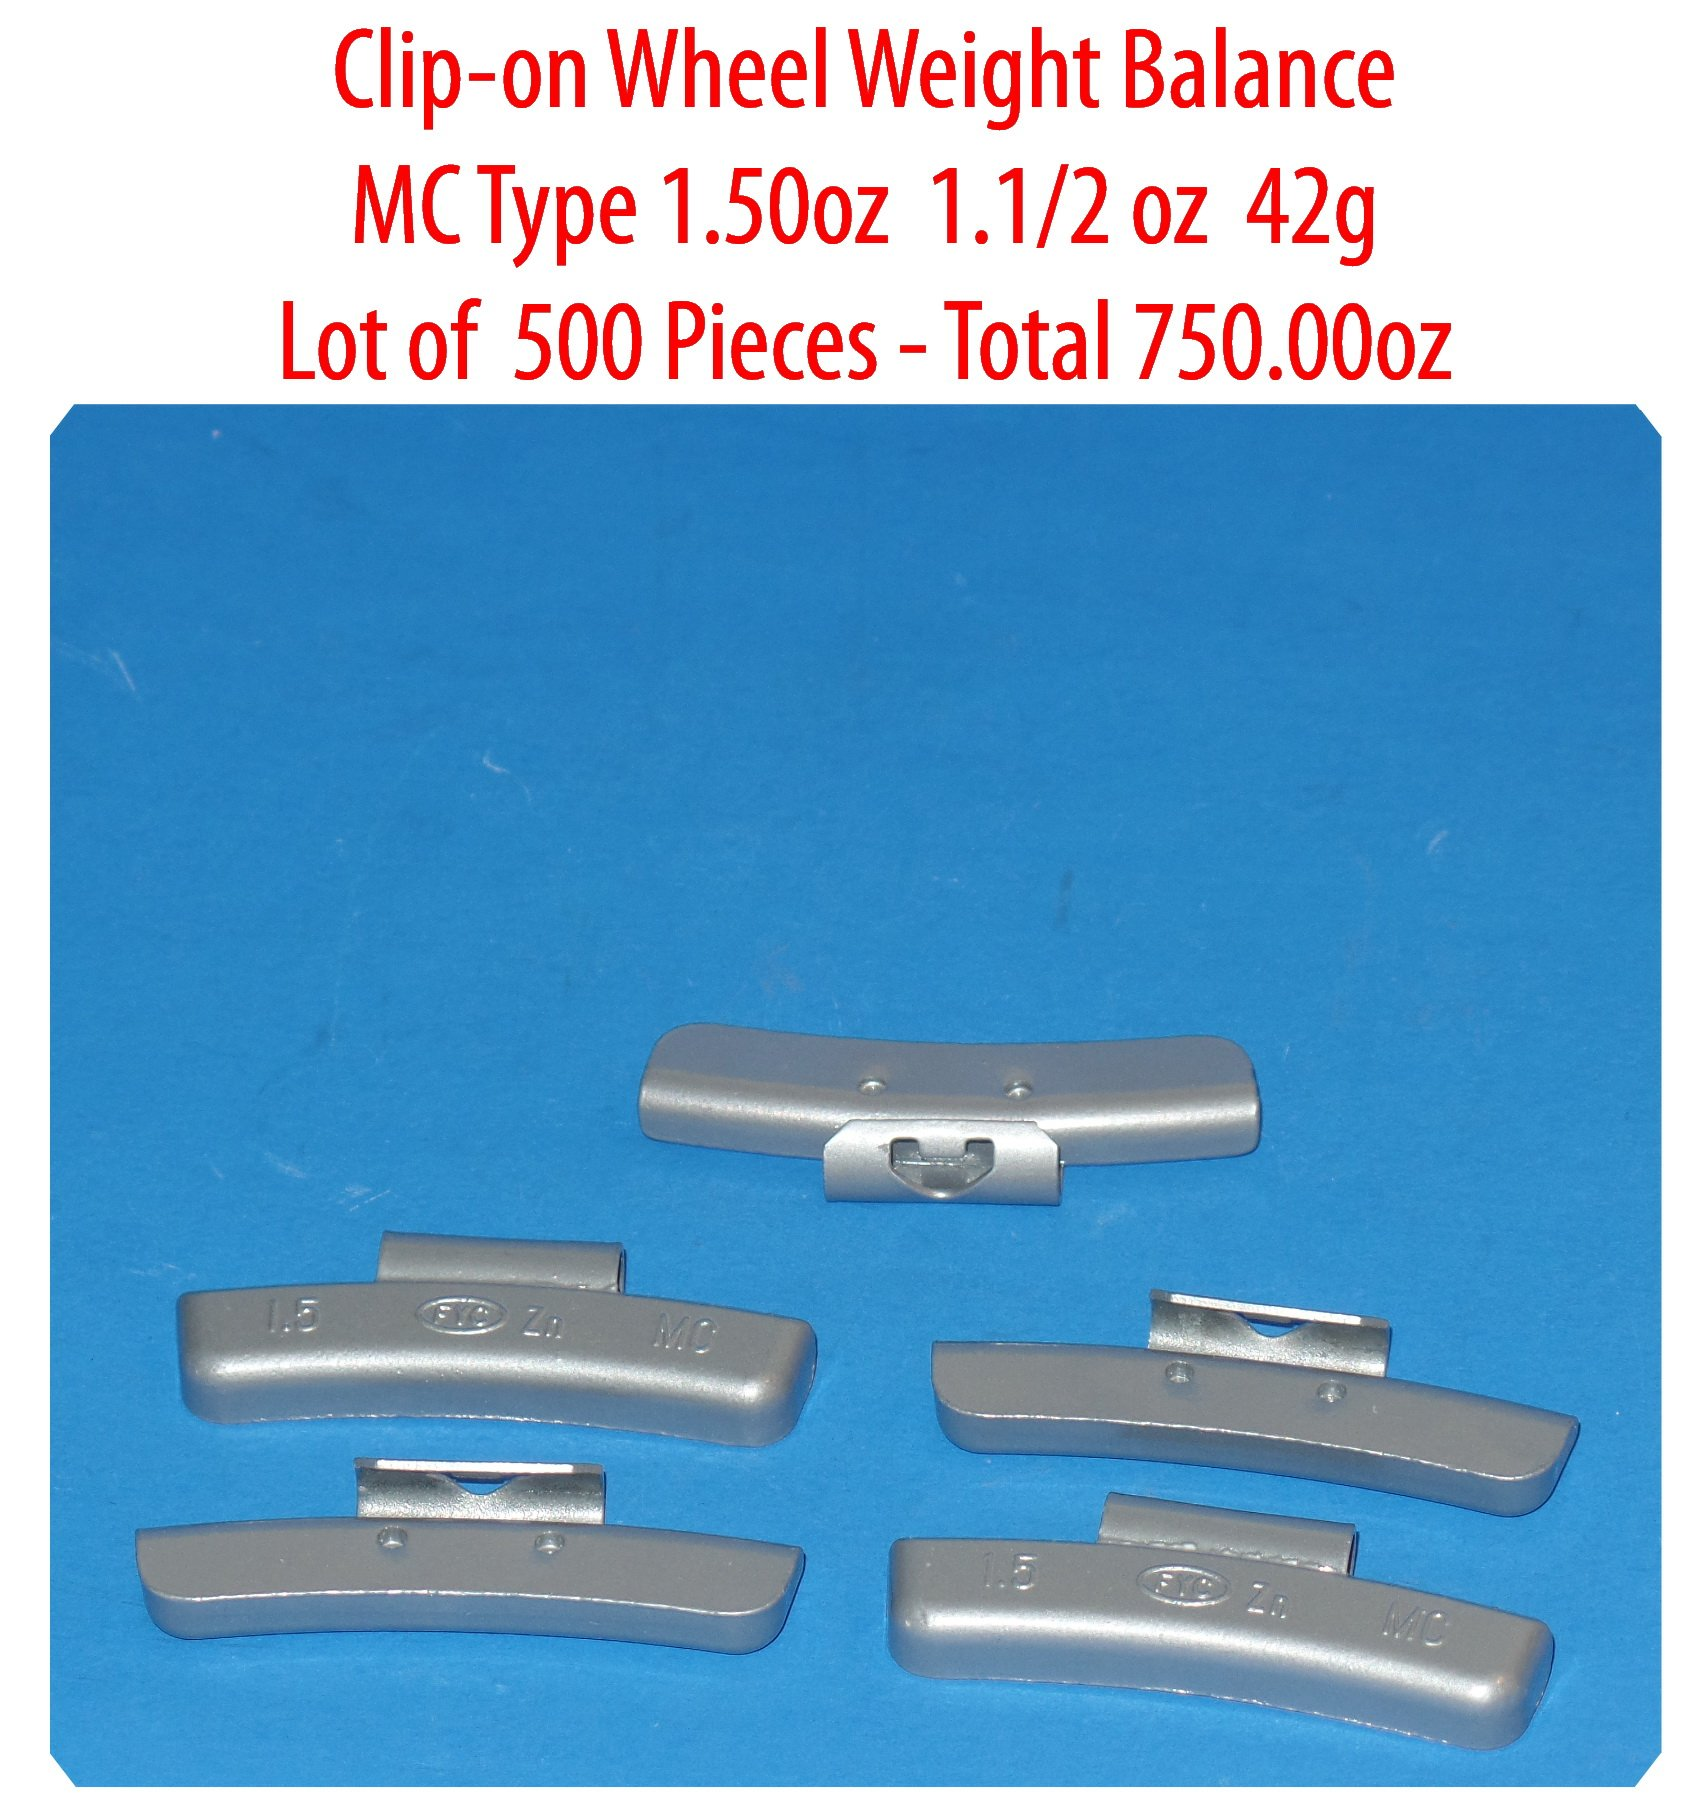 (500 Pieces) ZN CLIP-ON WHEEL WEIGHT BALANCE 1.50 1.1/2oz MC Type Total 750.00oz (Use for All Types of Alloy wheels On Passenger Cars , Trucks , Vans & Motorcycles)